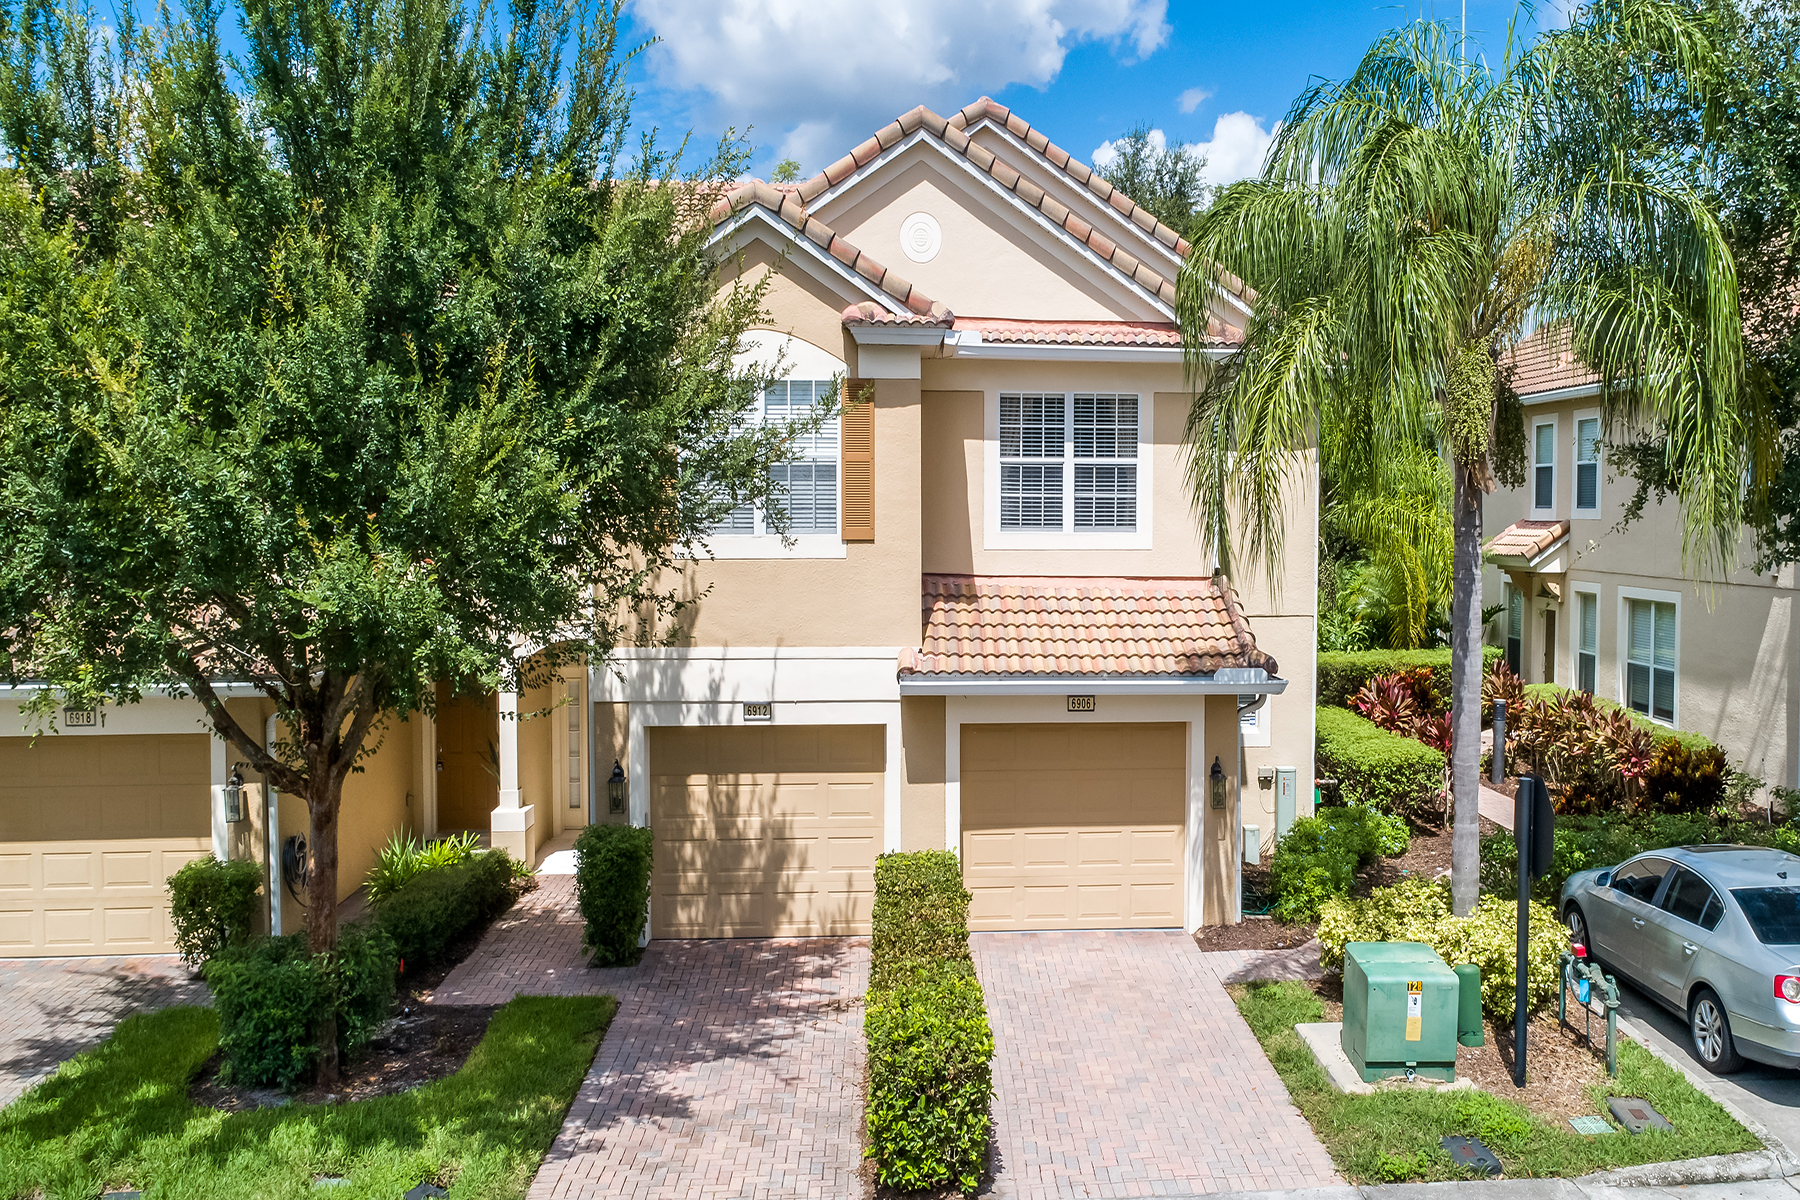 townhouses for Sale at Orlando 6906 Hochad Dr Orlando, Florida 32819 United States